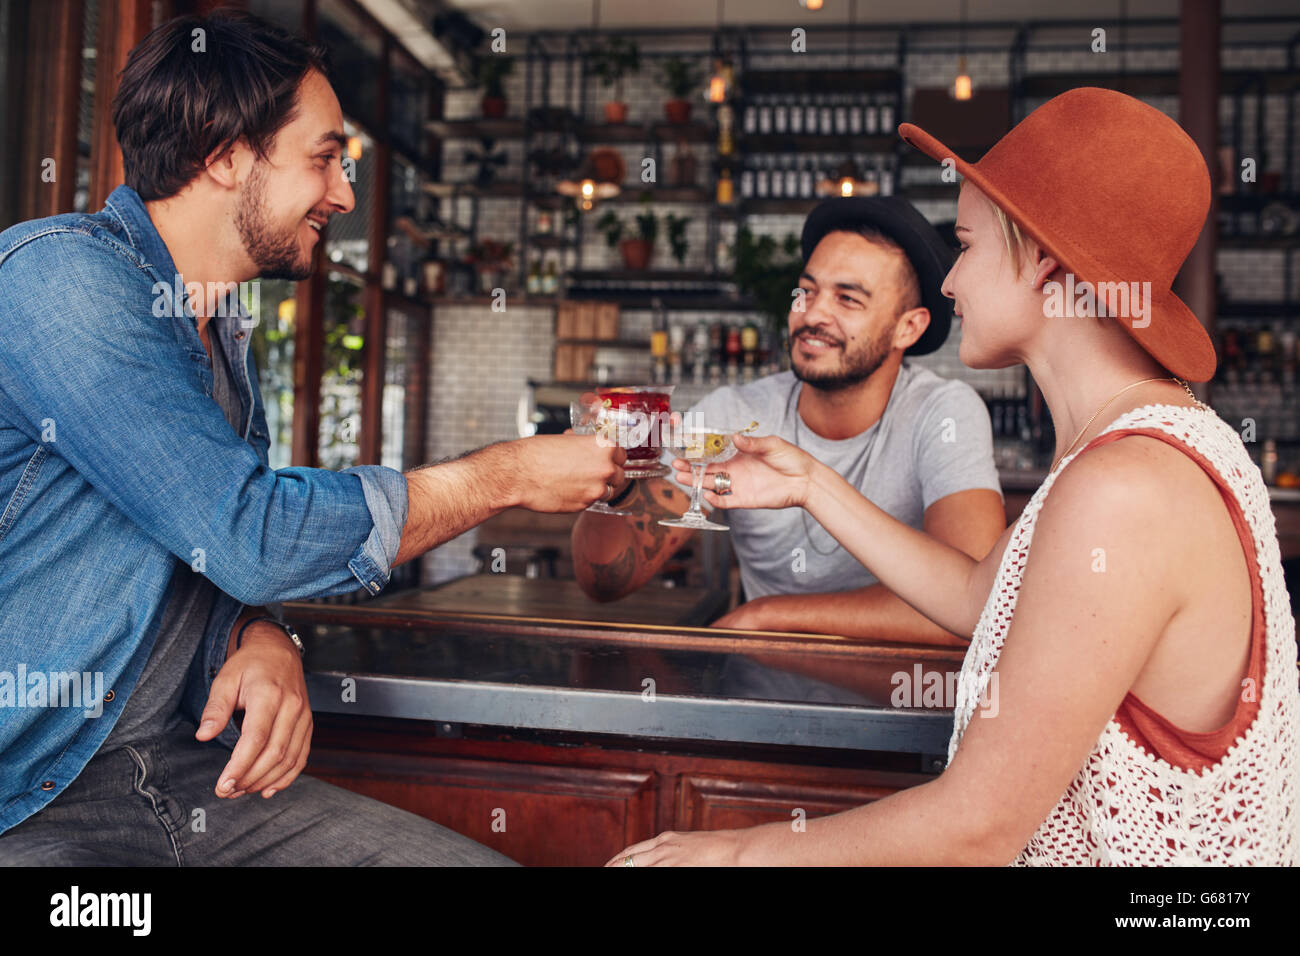 Three young people toasting drinks at cafe. Young men and woman having a glass of drink at bar. - Stock Image